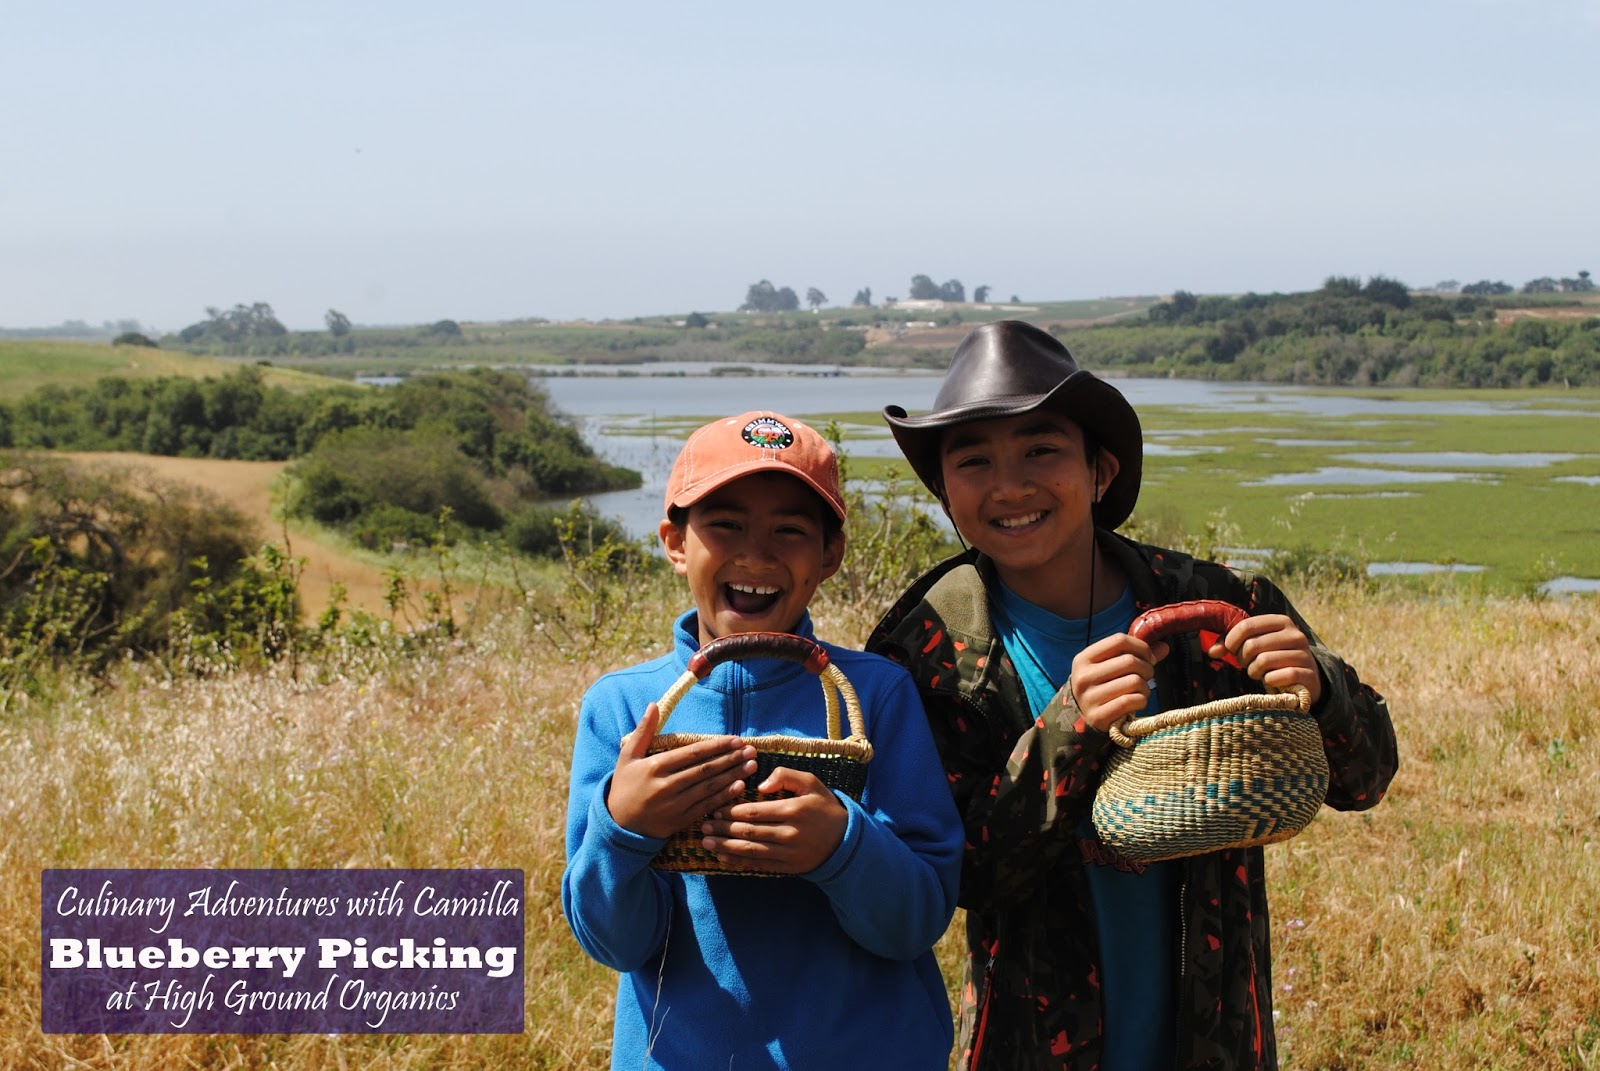 blueberry picking at harkins slough